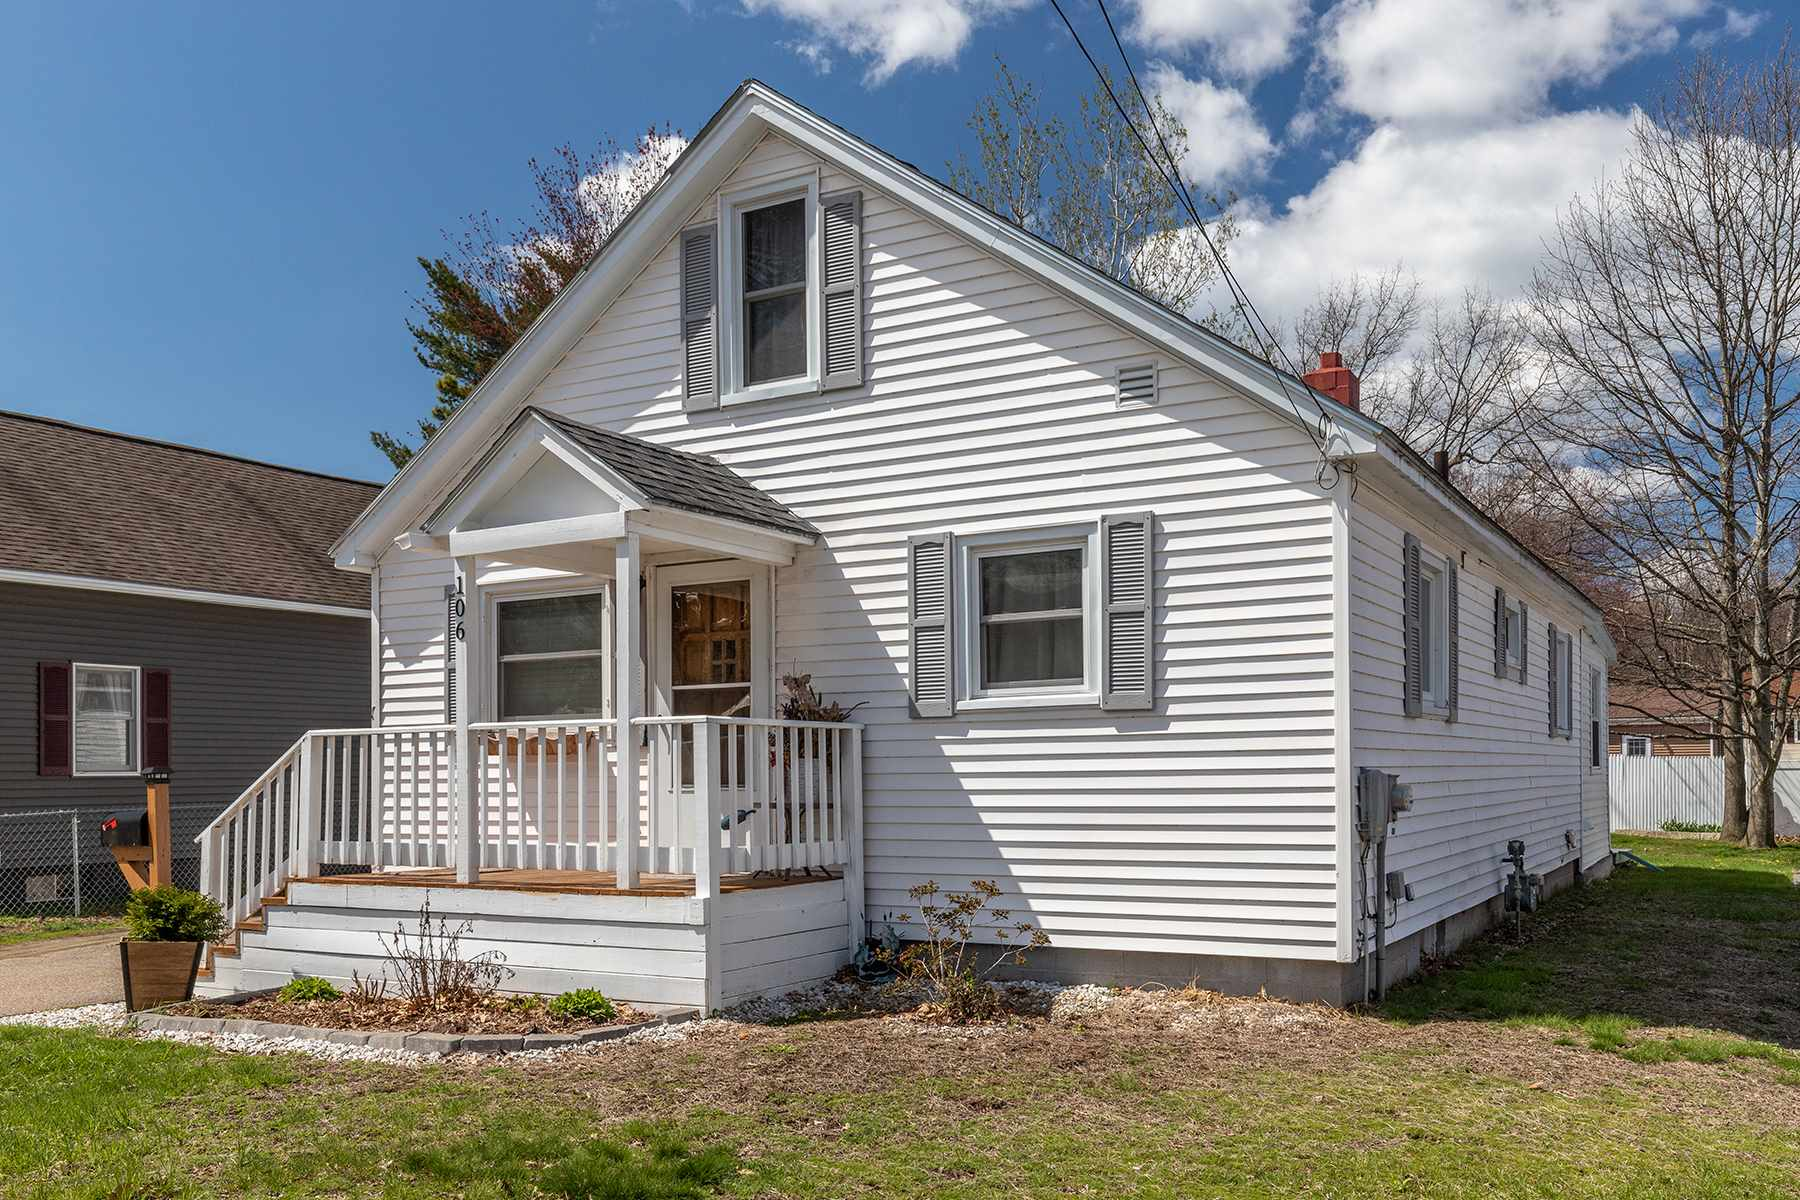 106 Cayuga Court, Burlington, Vermont 05408, 3 Bedrooms Bedrooms, ,2 BathroomsBathrooms,Single Family,For Sale,106 Cayuga Court,1.75,4857120